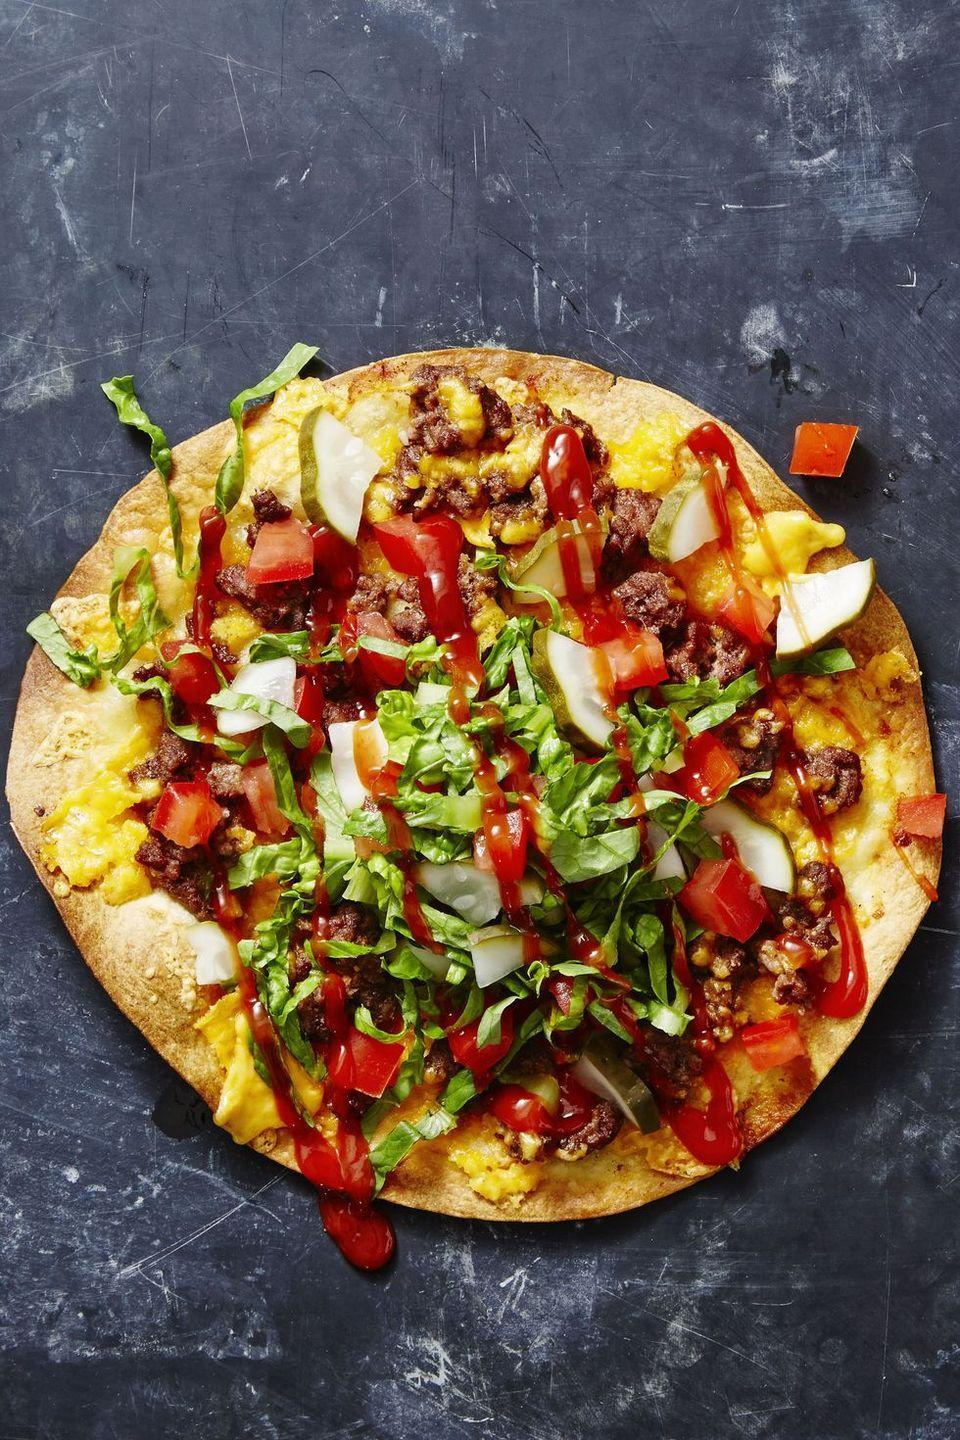 "<p>Sure, it may be tricky to make burgers using only one pan, but when you pile all of the best flavors on top of a crisp tortilla and bake it in the oven, you can have it all.</p><p><em><a href=""https://www.goodhousekeeping.com/food-recipes/a41226/cheeseburger-tostadas-recipe/"" rel=""nofollow noopener"" target=""_blank"" data-ylk=""slk:Get the recipe for Cheeseburger Tostadas »"" class=""link rapid-noclick-resp"">Get the recipe for Cheeseburger Tostadas »</a></em></p>"